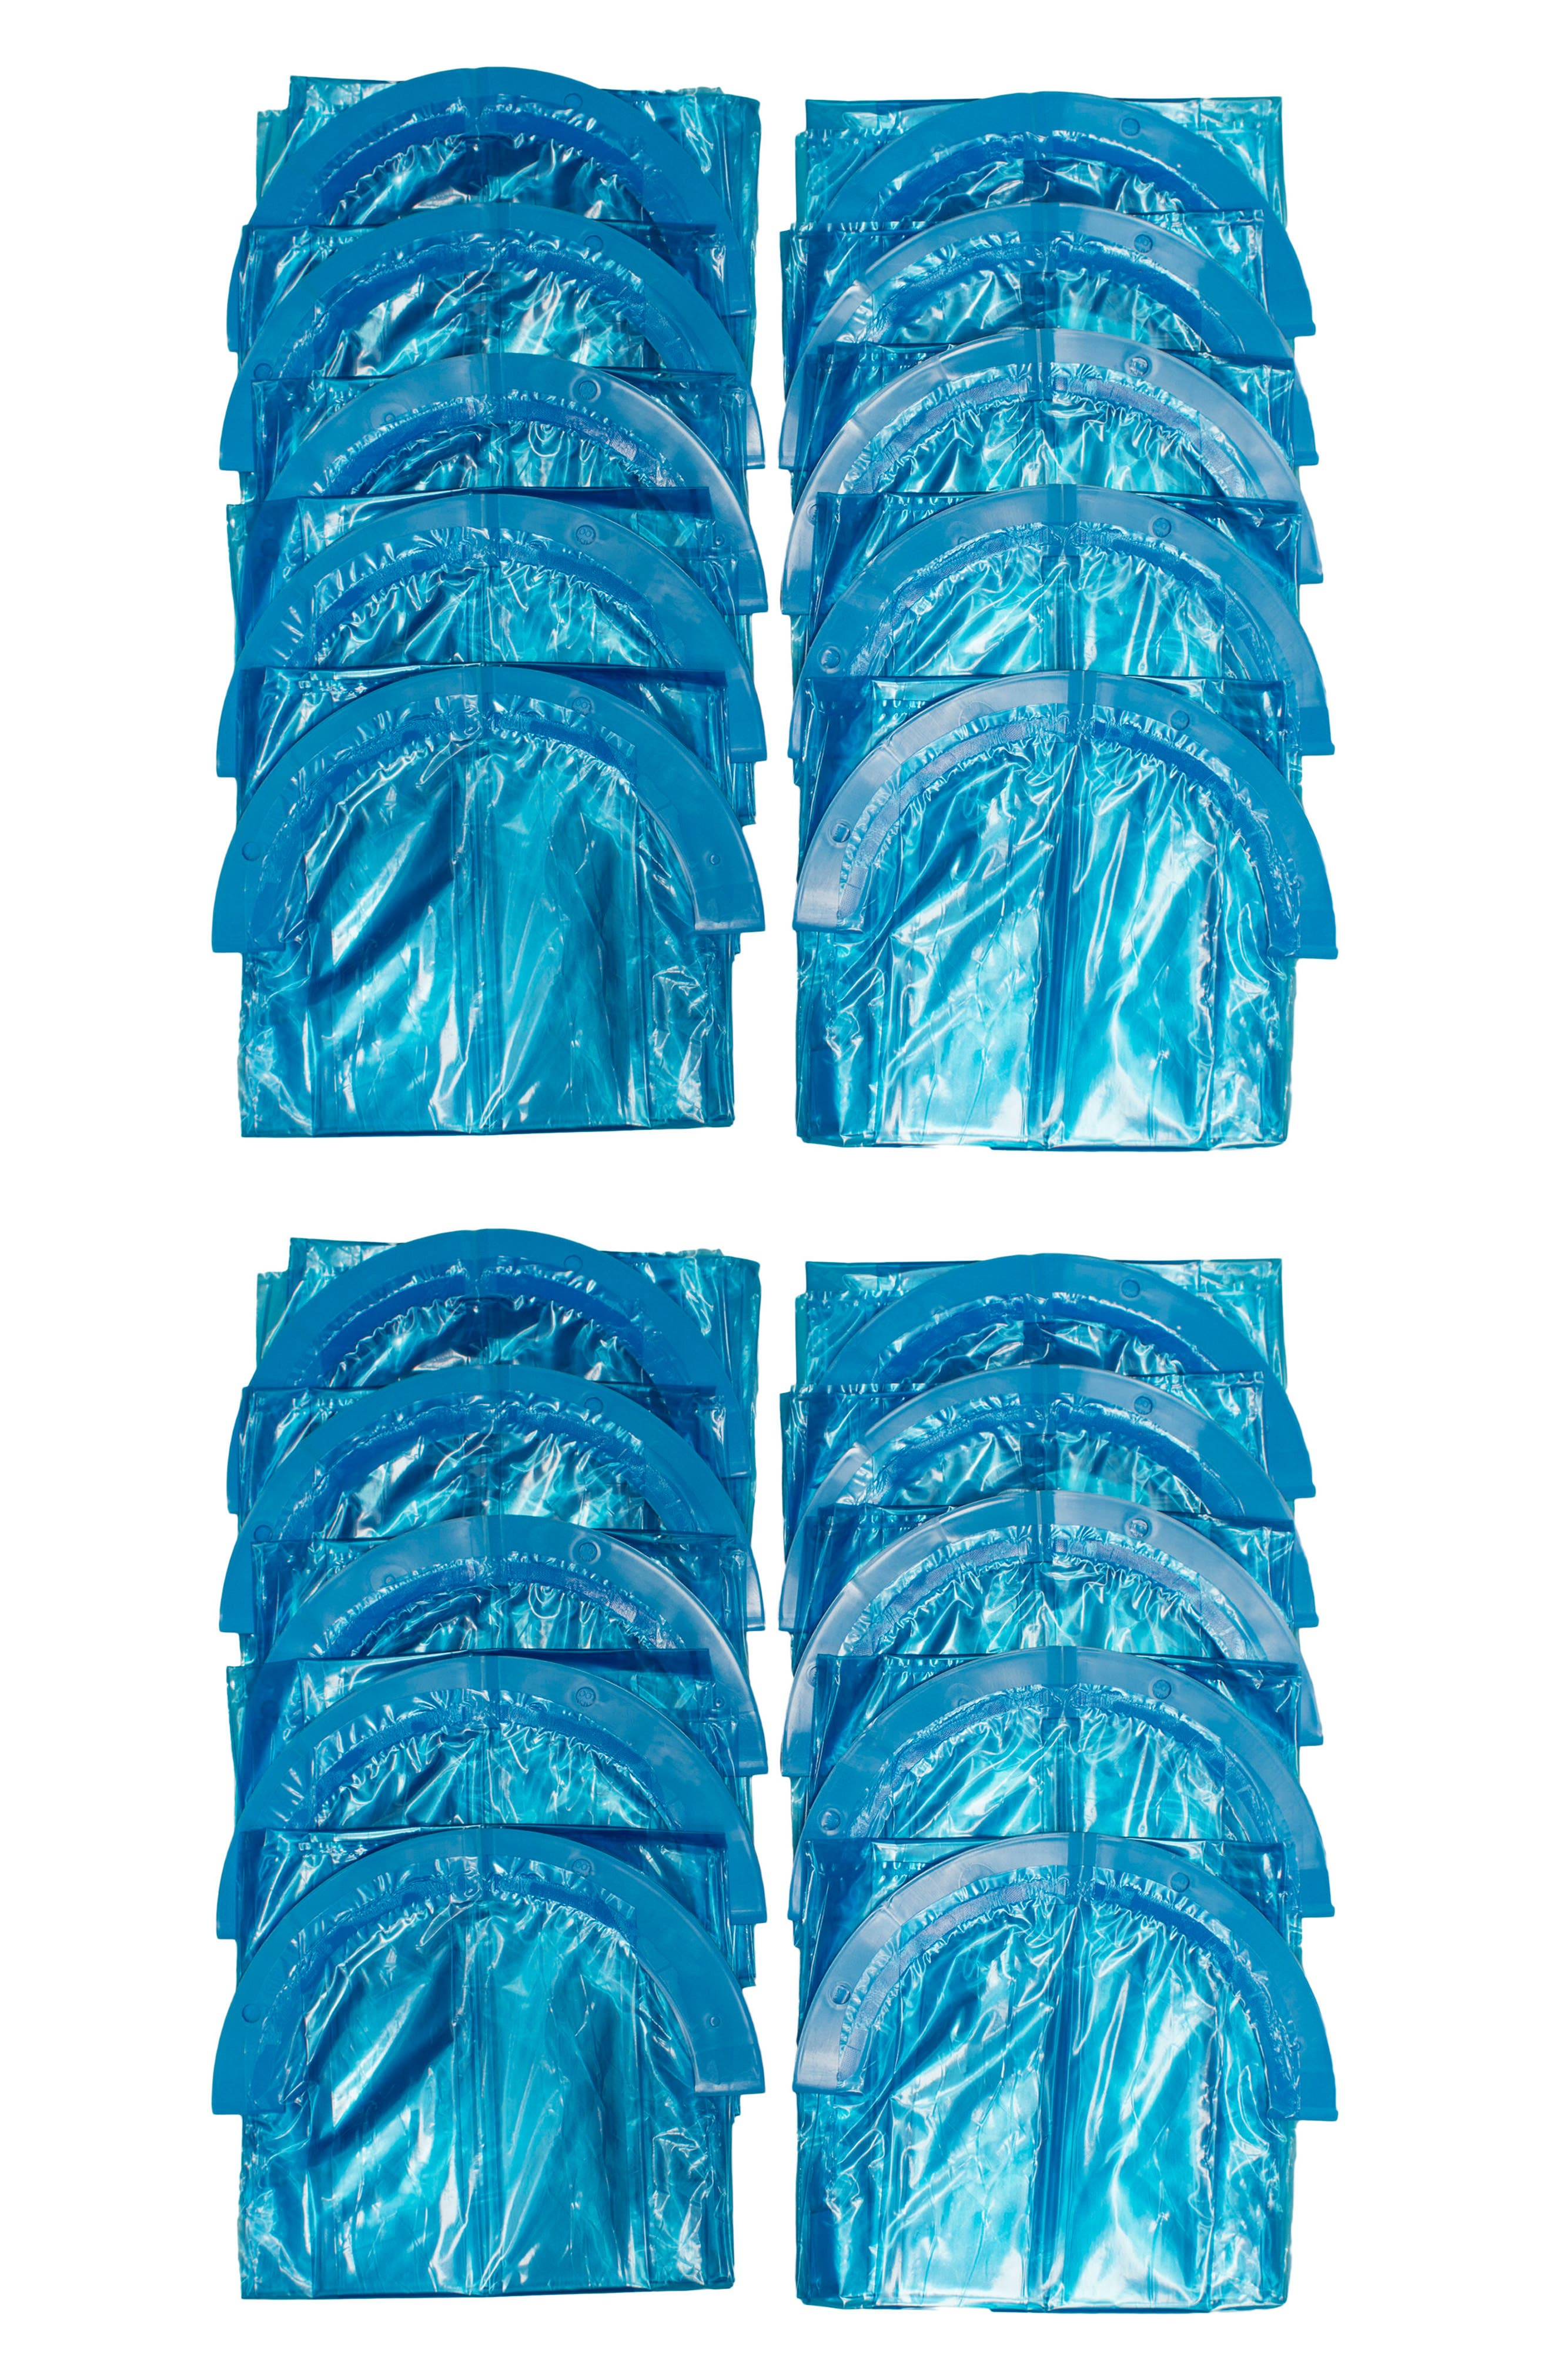 Twist'r Diaper Disposal System Set of 20 Refill Bags,                         Main,                         color, White